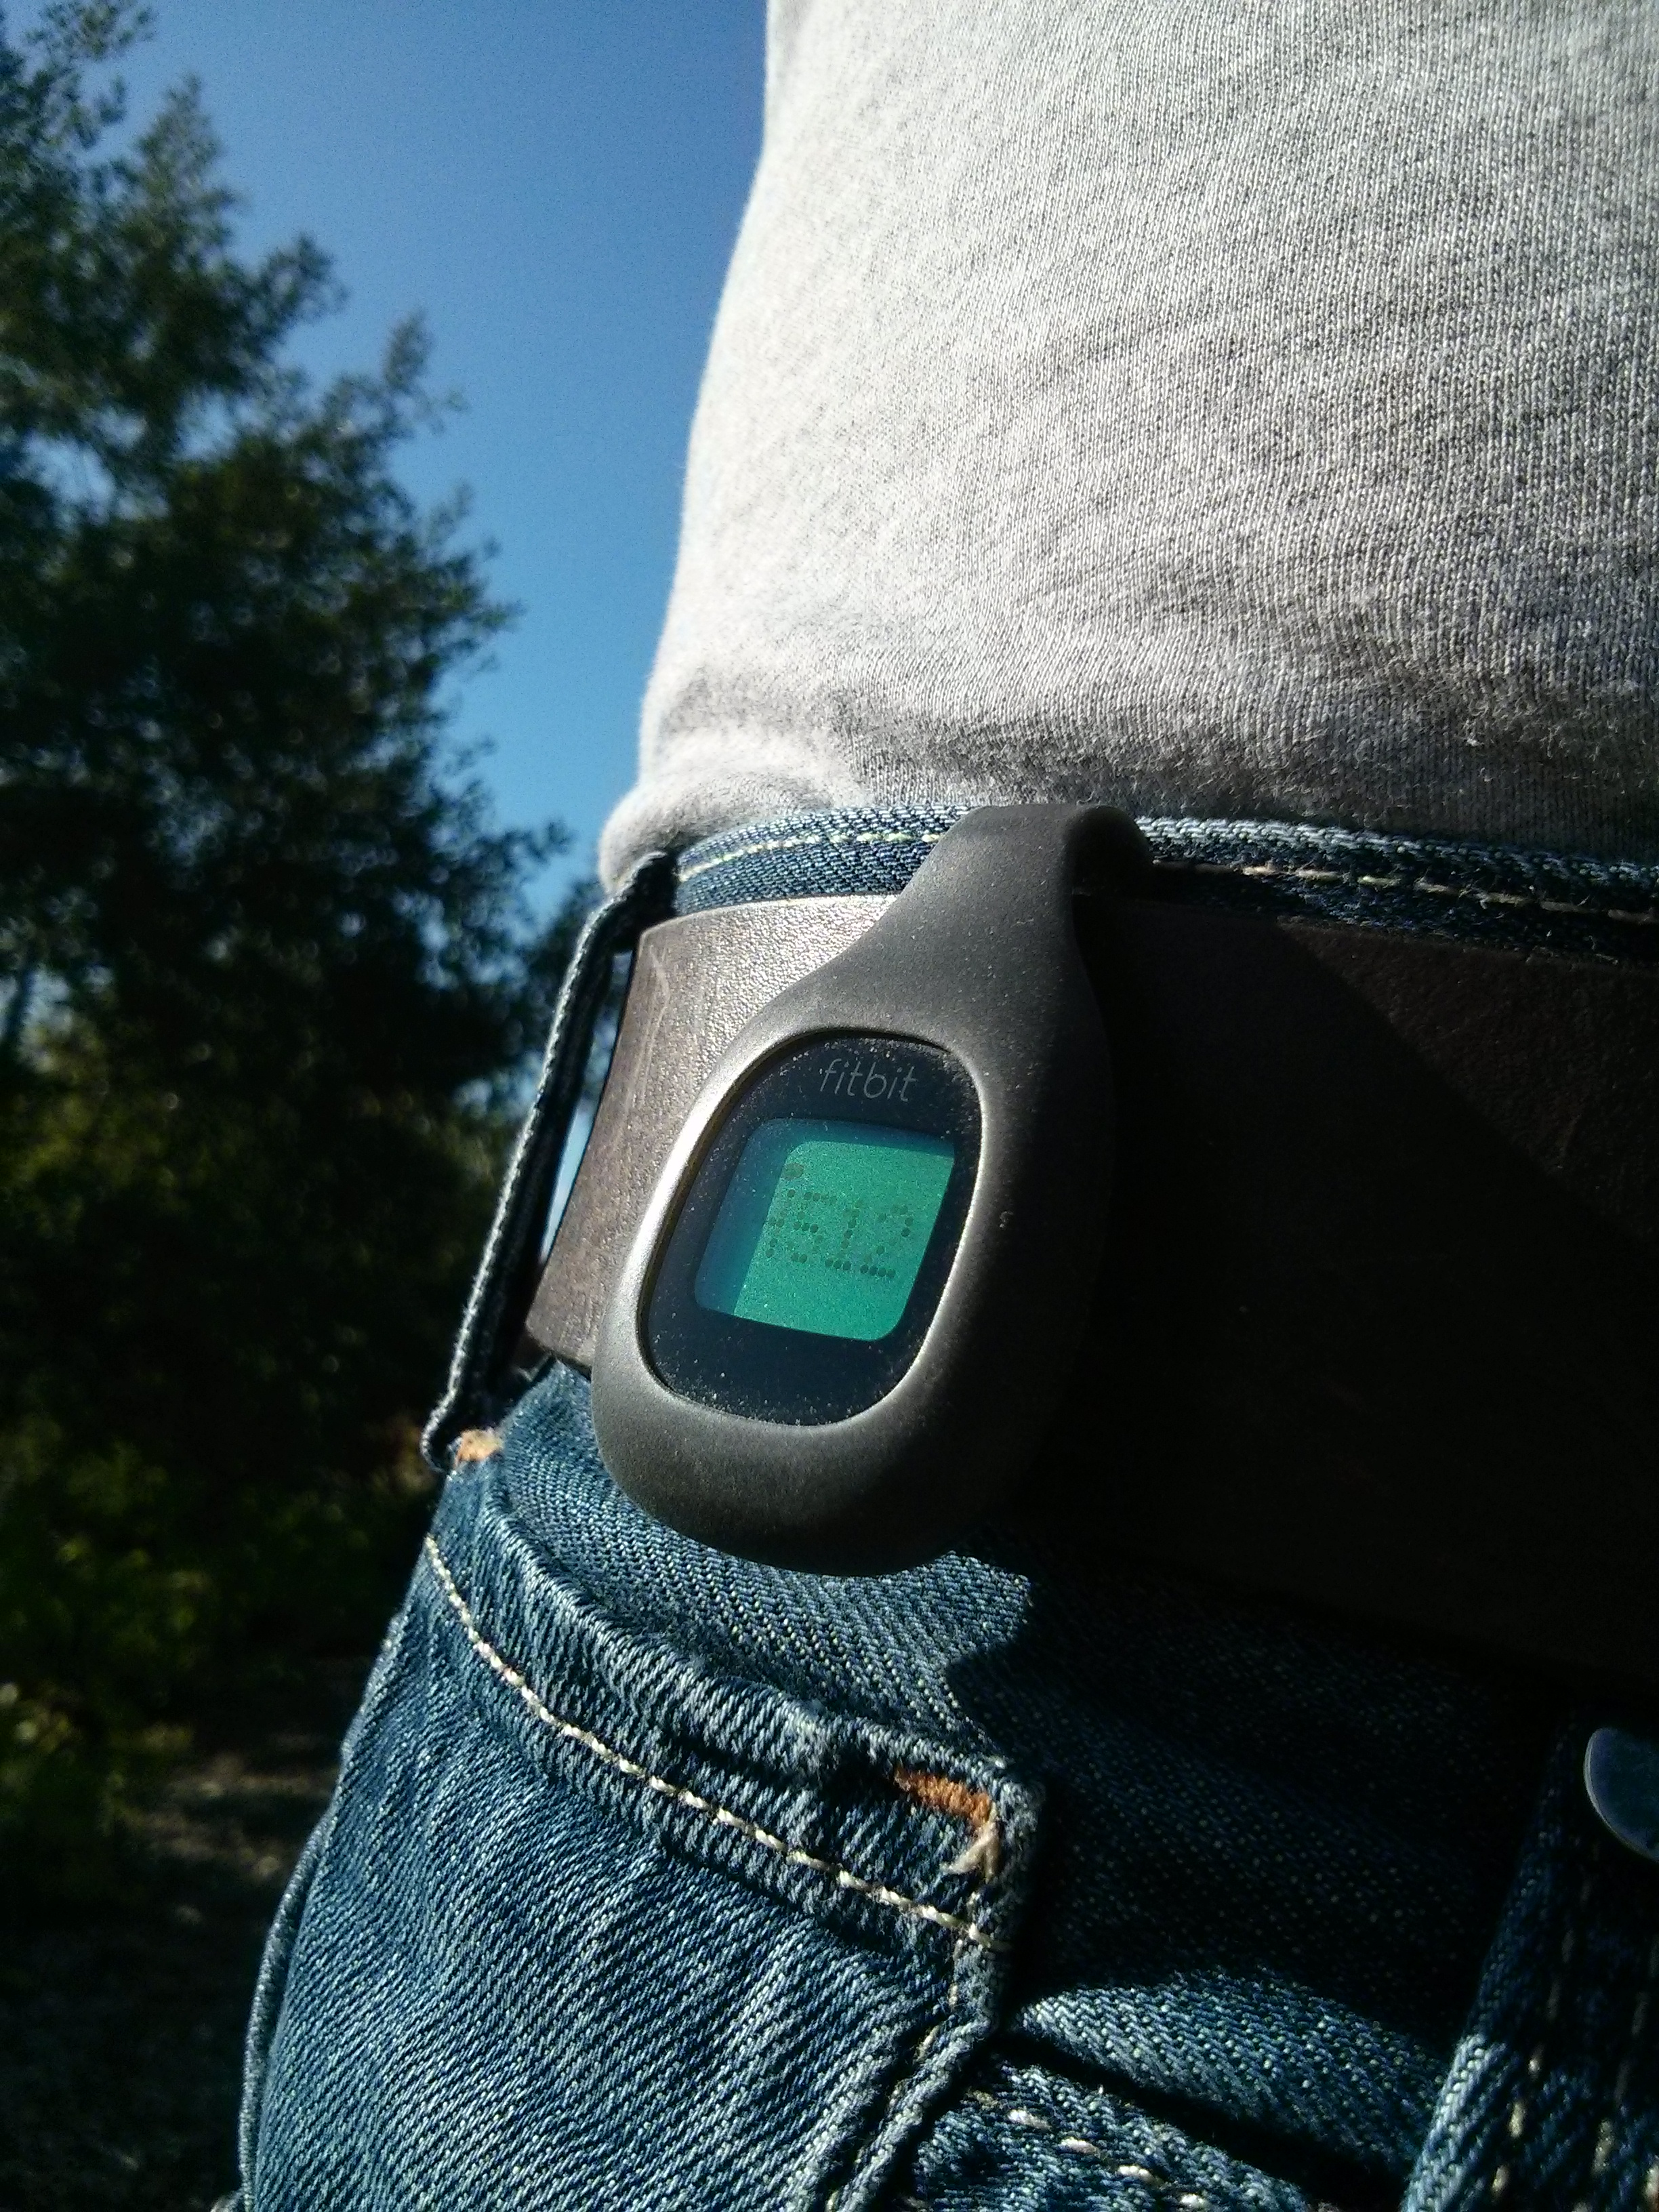 Can a simple pedometer make a big difference?